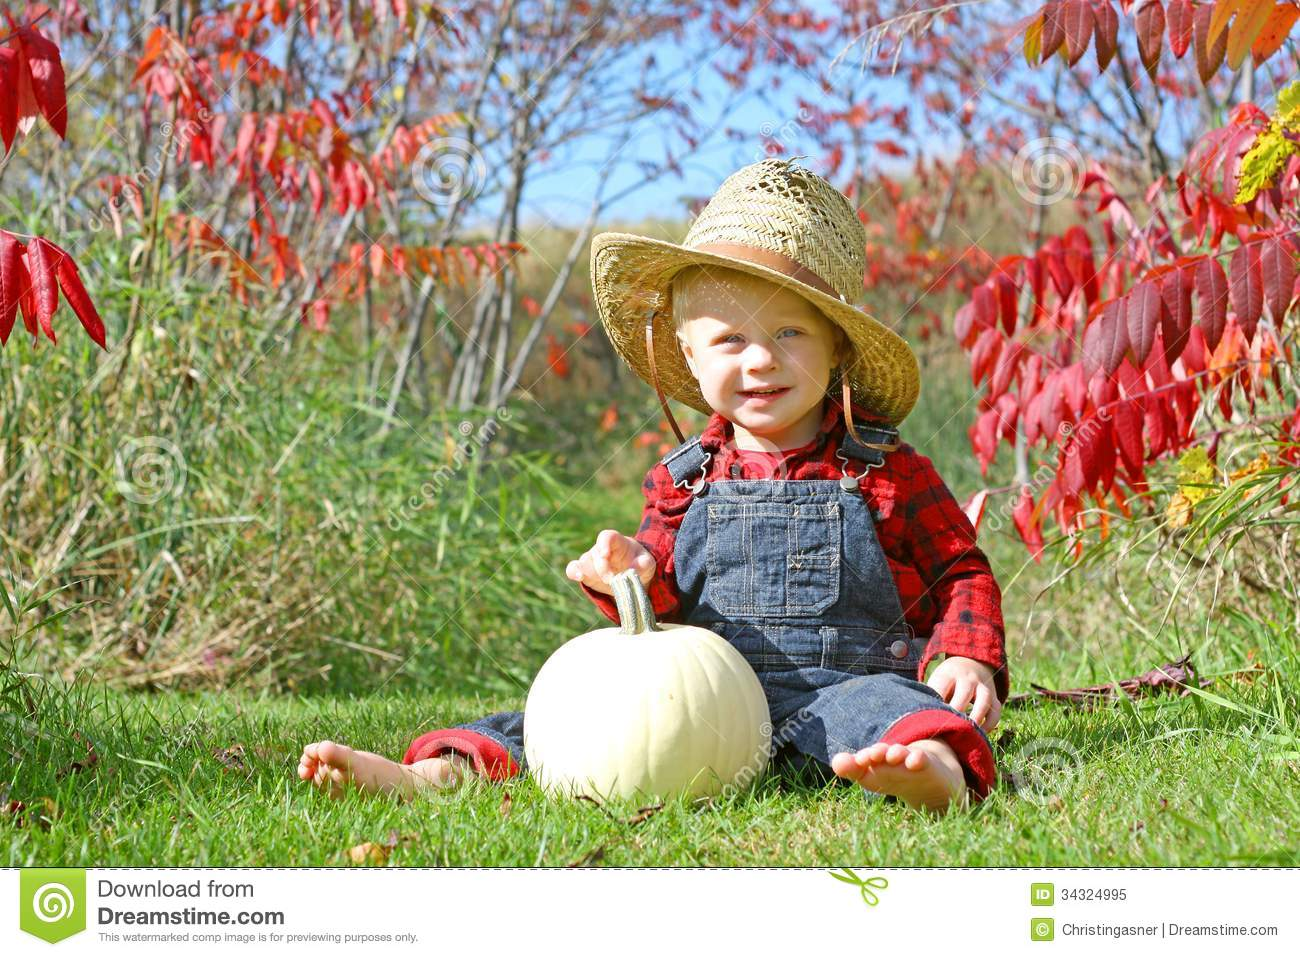 Smiling Country Boy Baby In Autumn Foliage Stock Image - Image of ... 06cc5c755b2